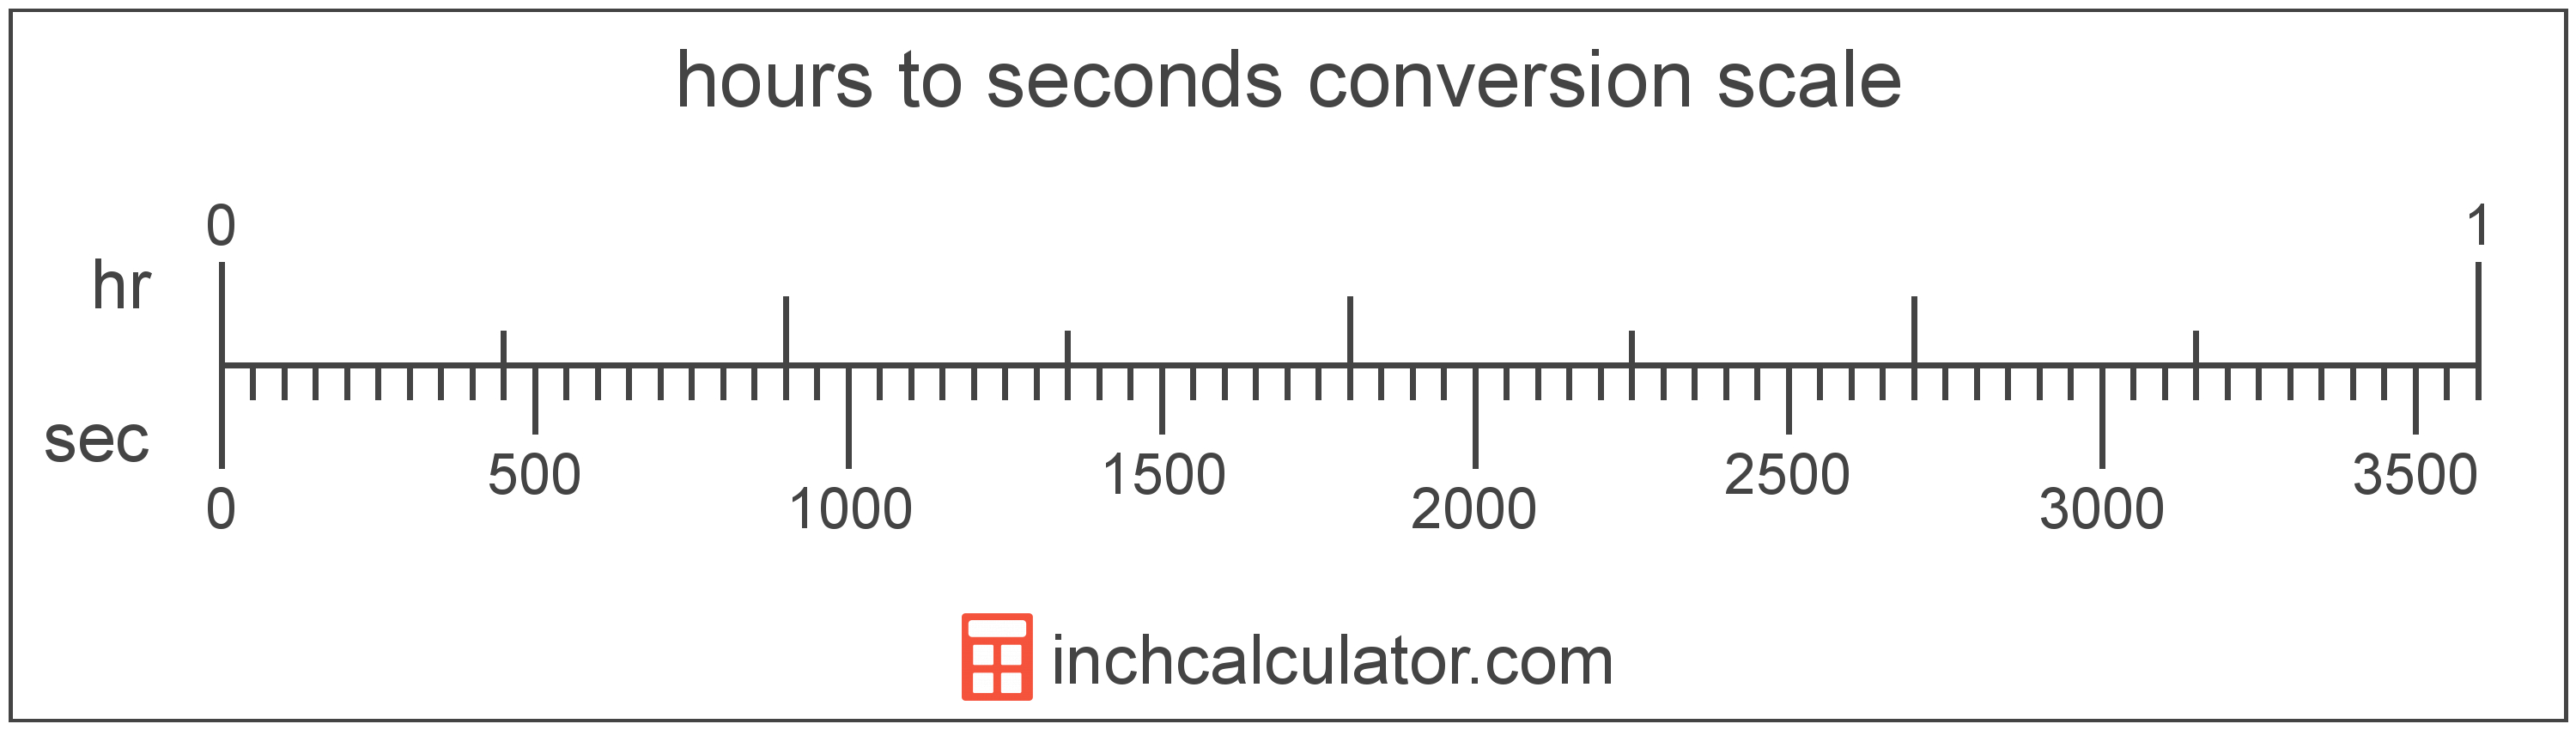 conversion scale showing seconds and equivalent hours time values